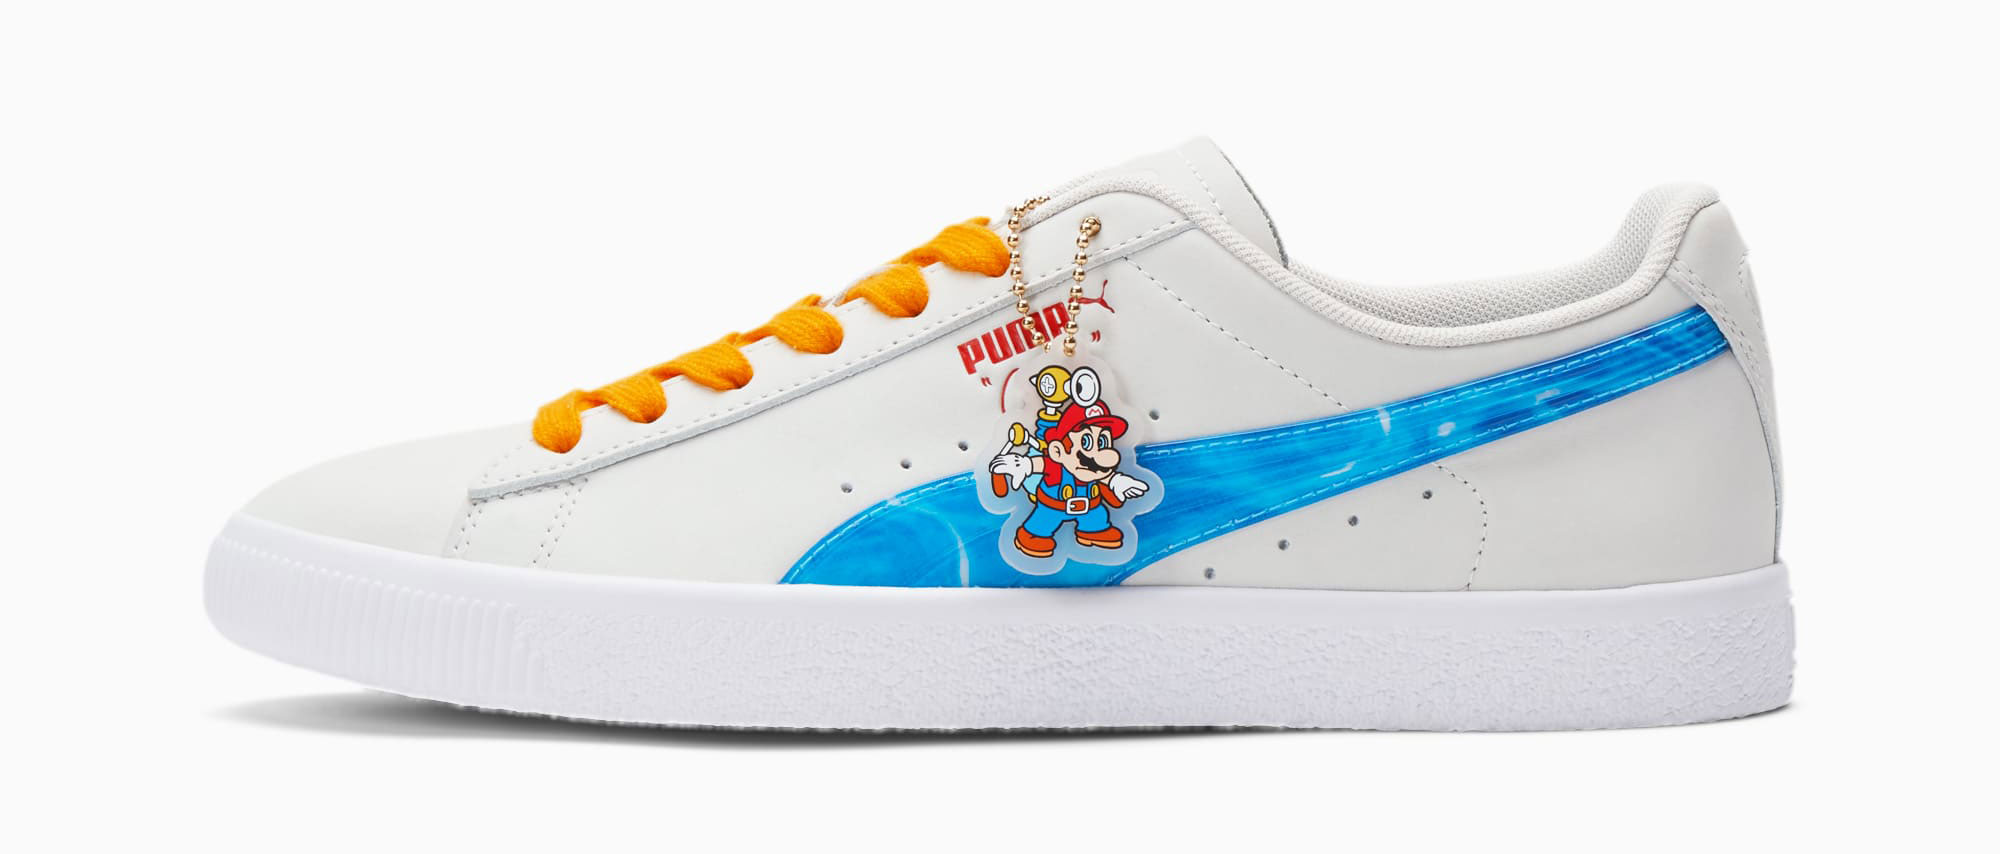 puma-clyde-super-mario-sunshine